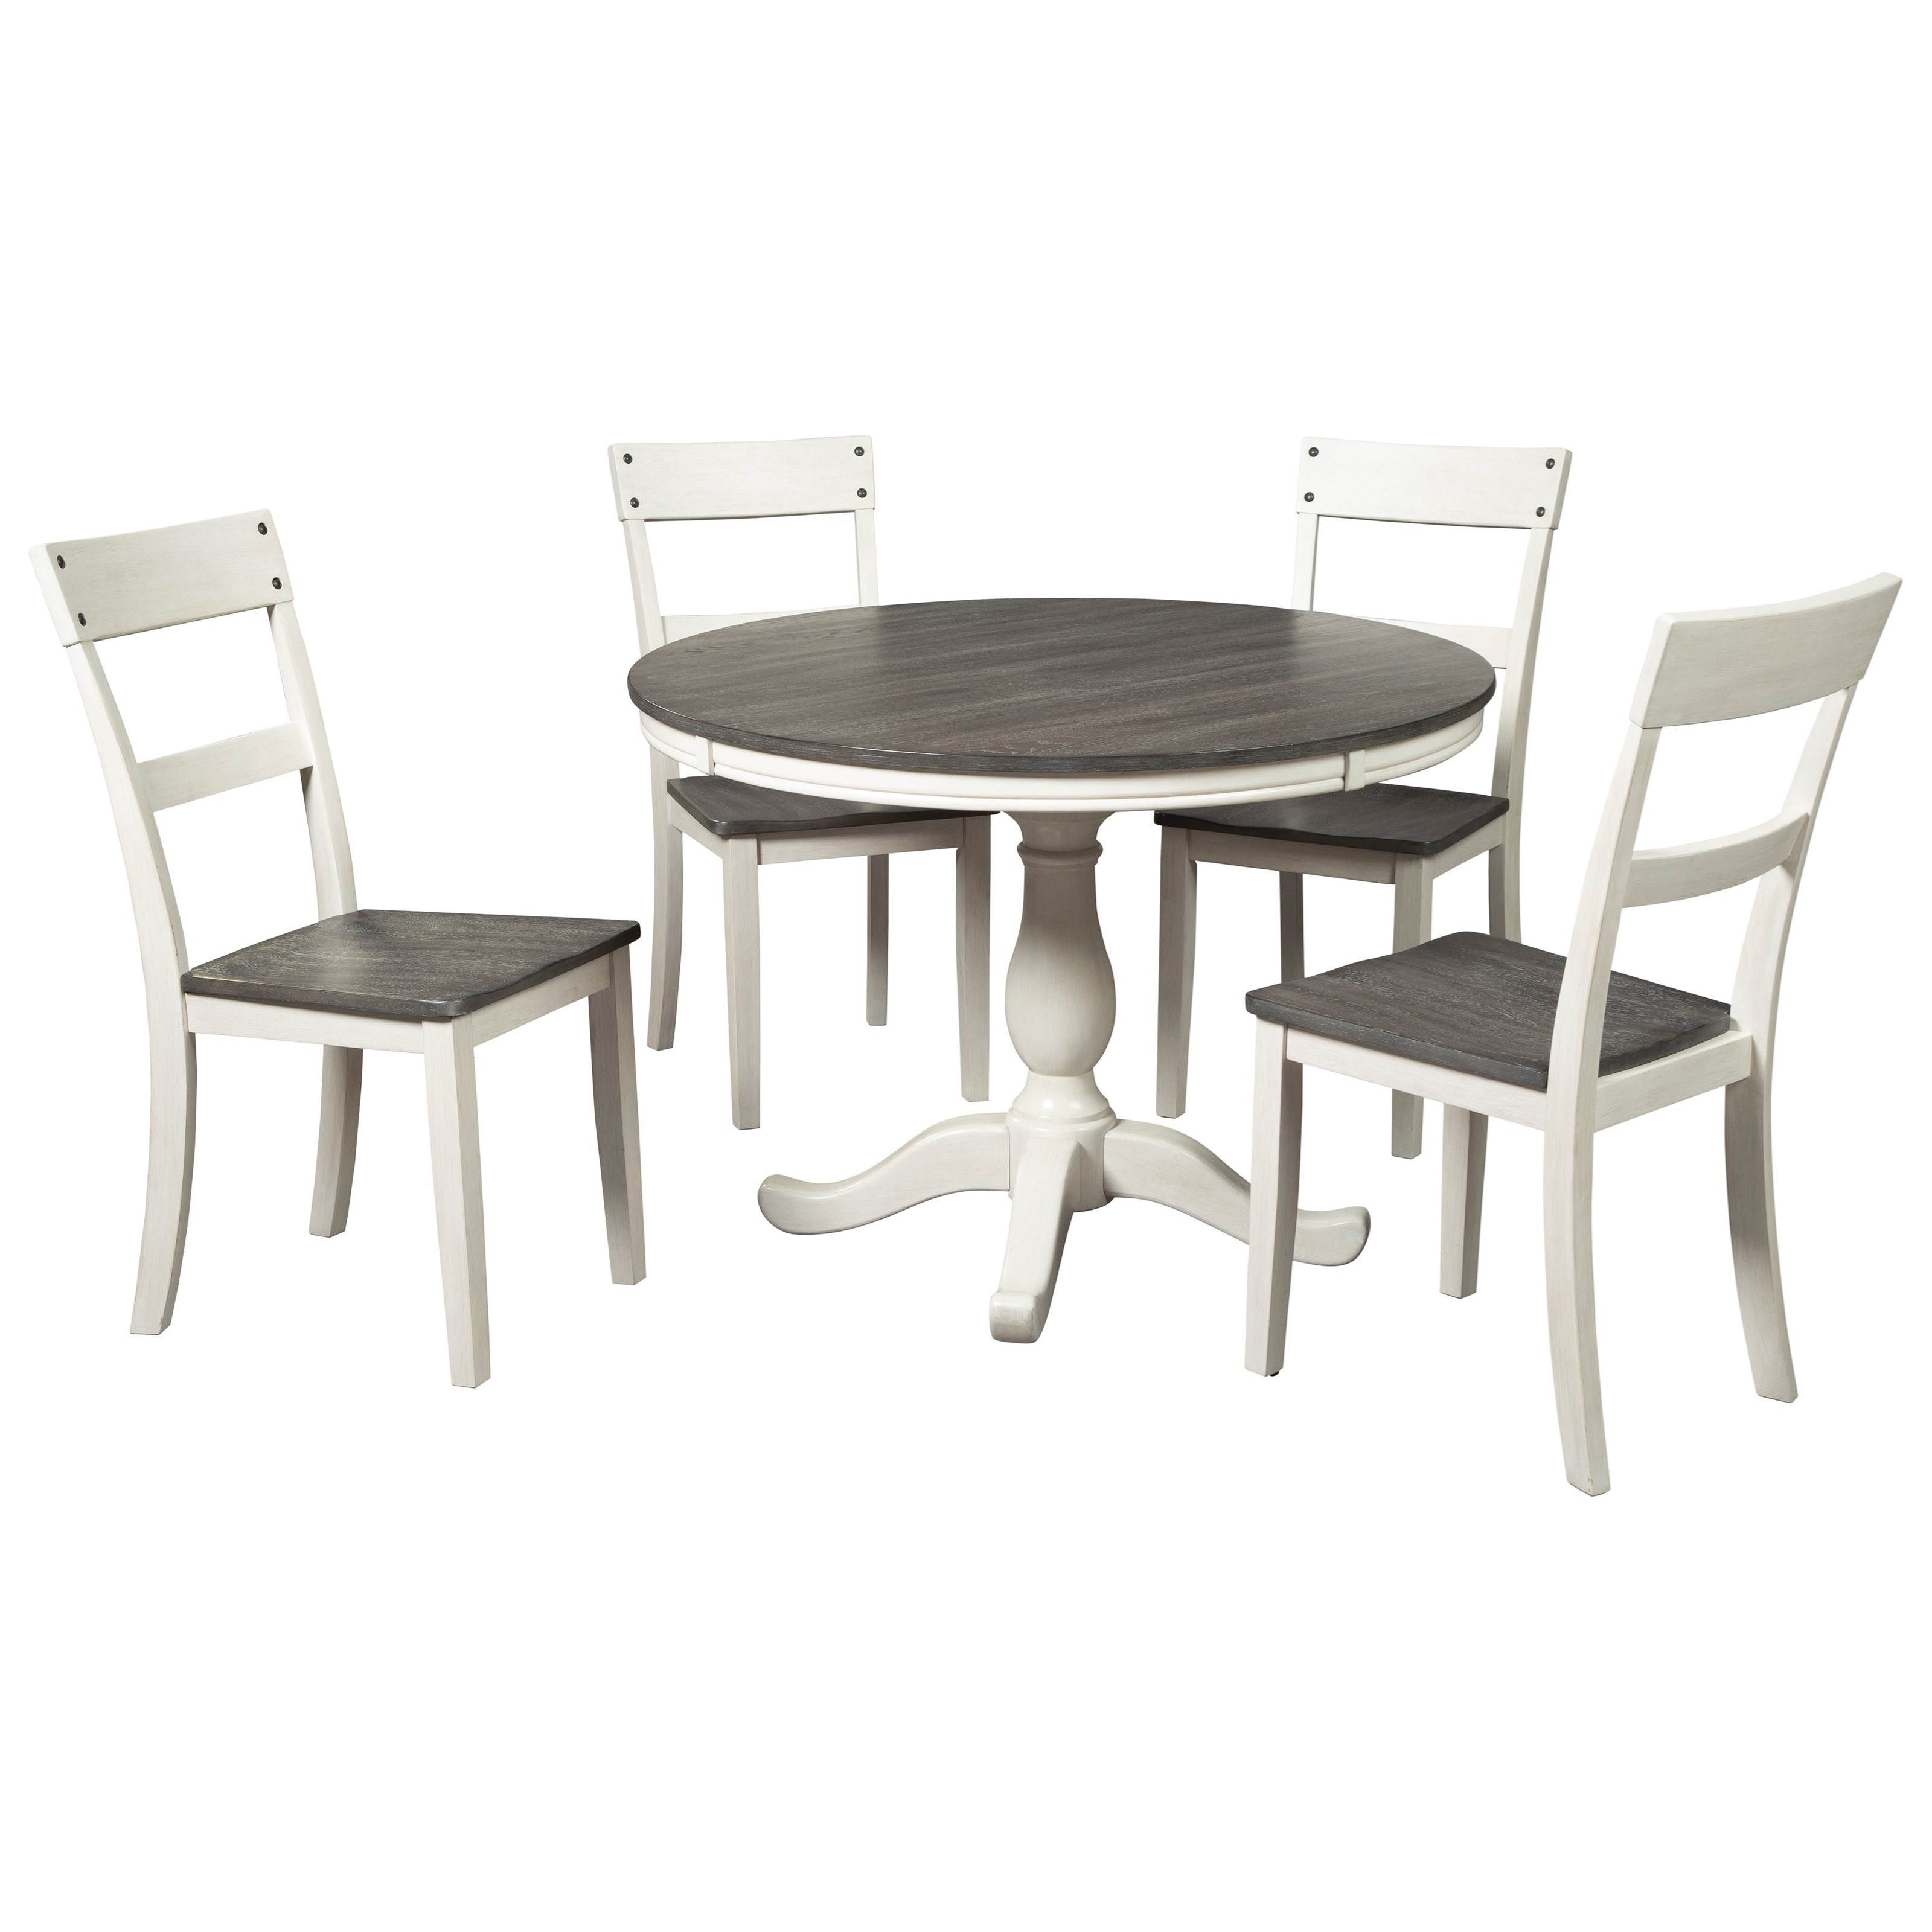 Picture of: Signature Design By Ashley Nelling Farmhouse Two Tone 5 Piece Round Dining Table Set Godby Home Furnishings Dining 5 Piece Sets